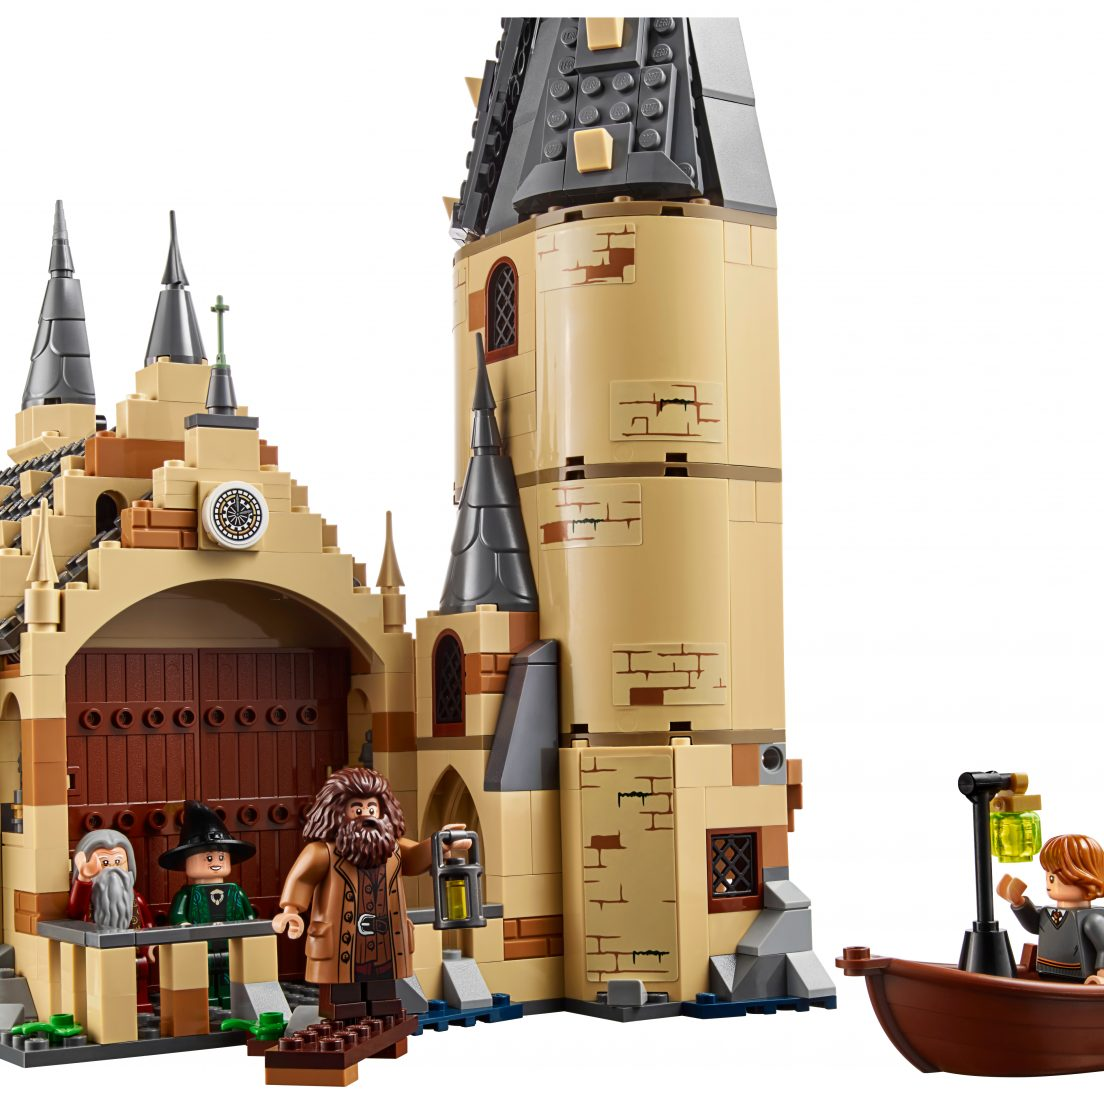 LEGO Harry Potter - 75954 Hogwarts Great Hall - Side View